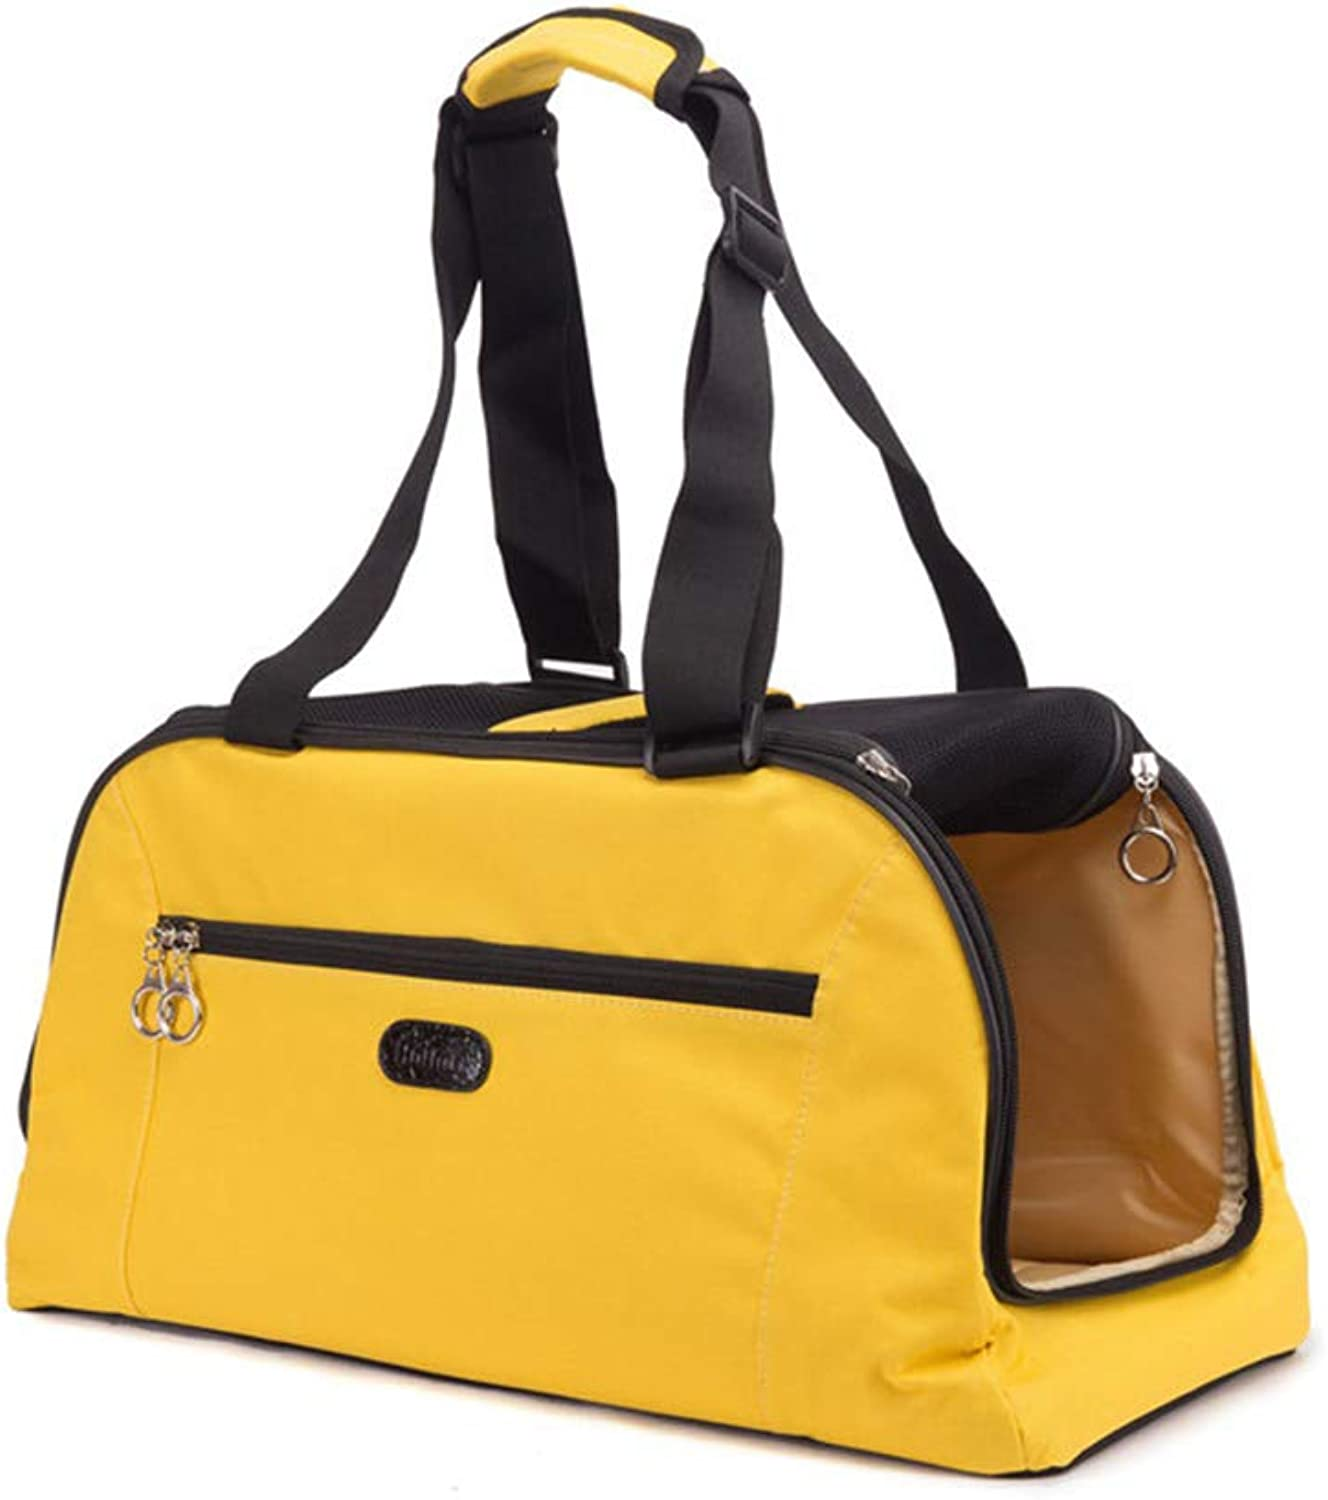 Dog Cat Carrier, Breathable Pet Transport Tote Bag for Small and Medium Pets for Outdoor Camping